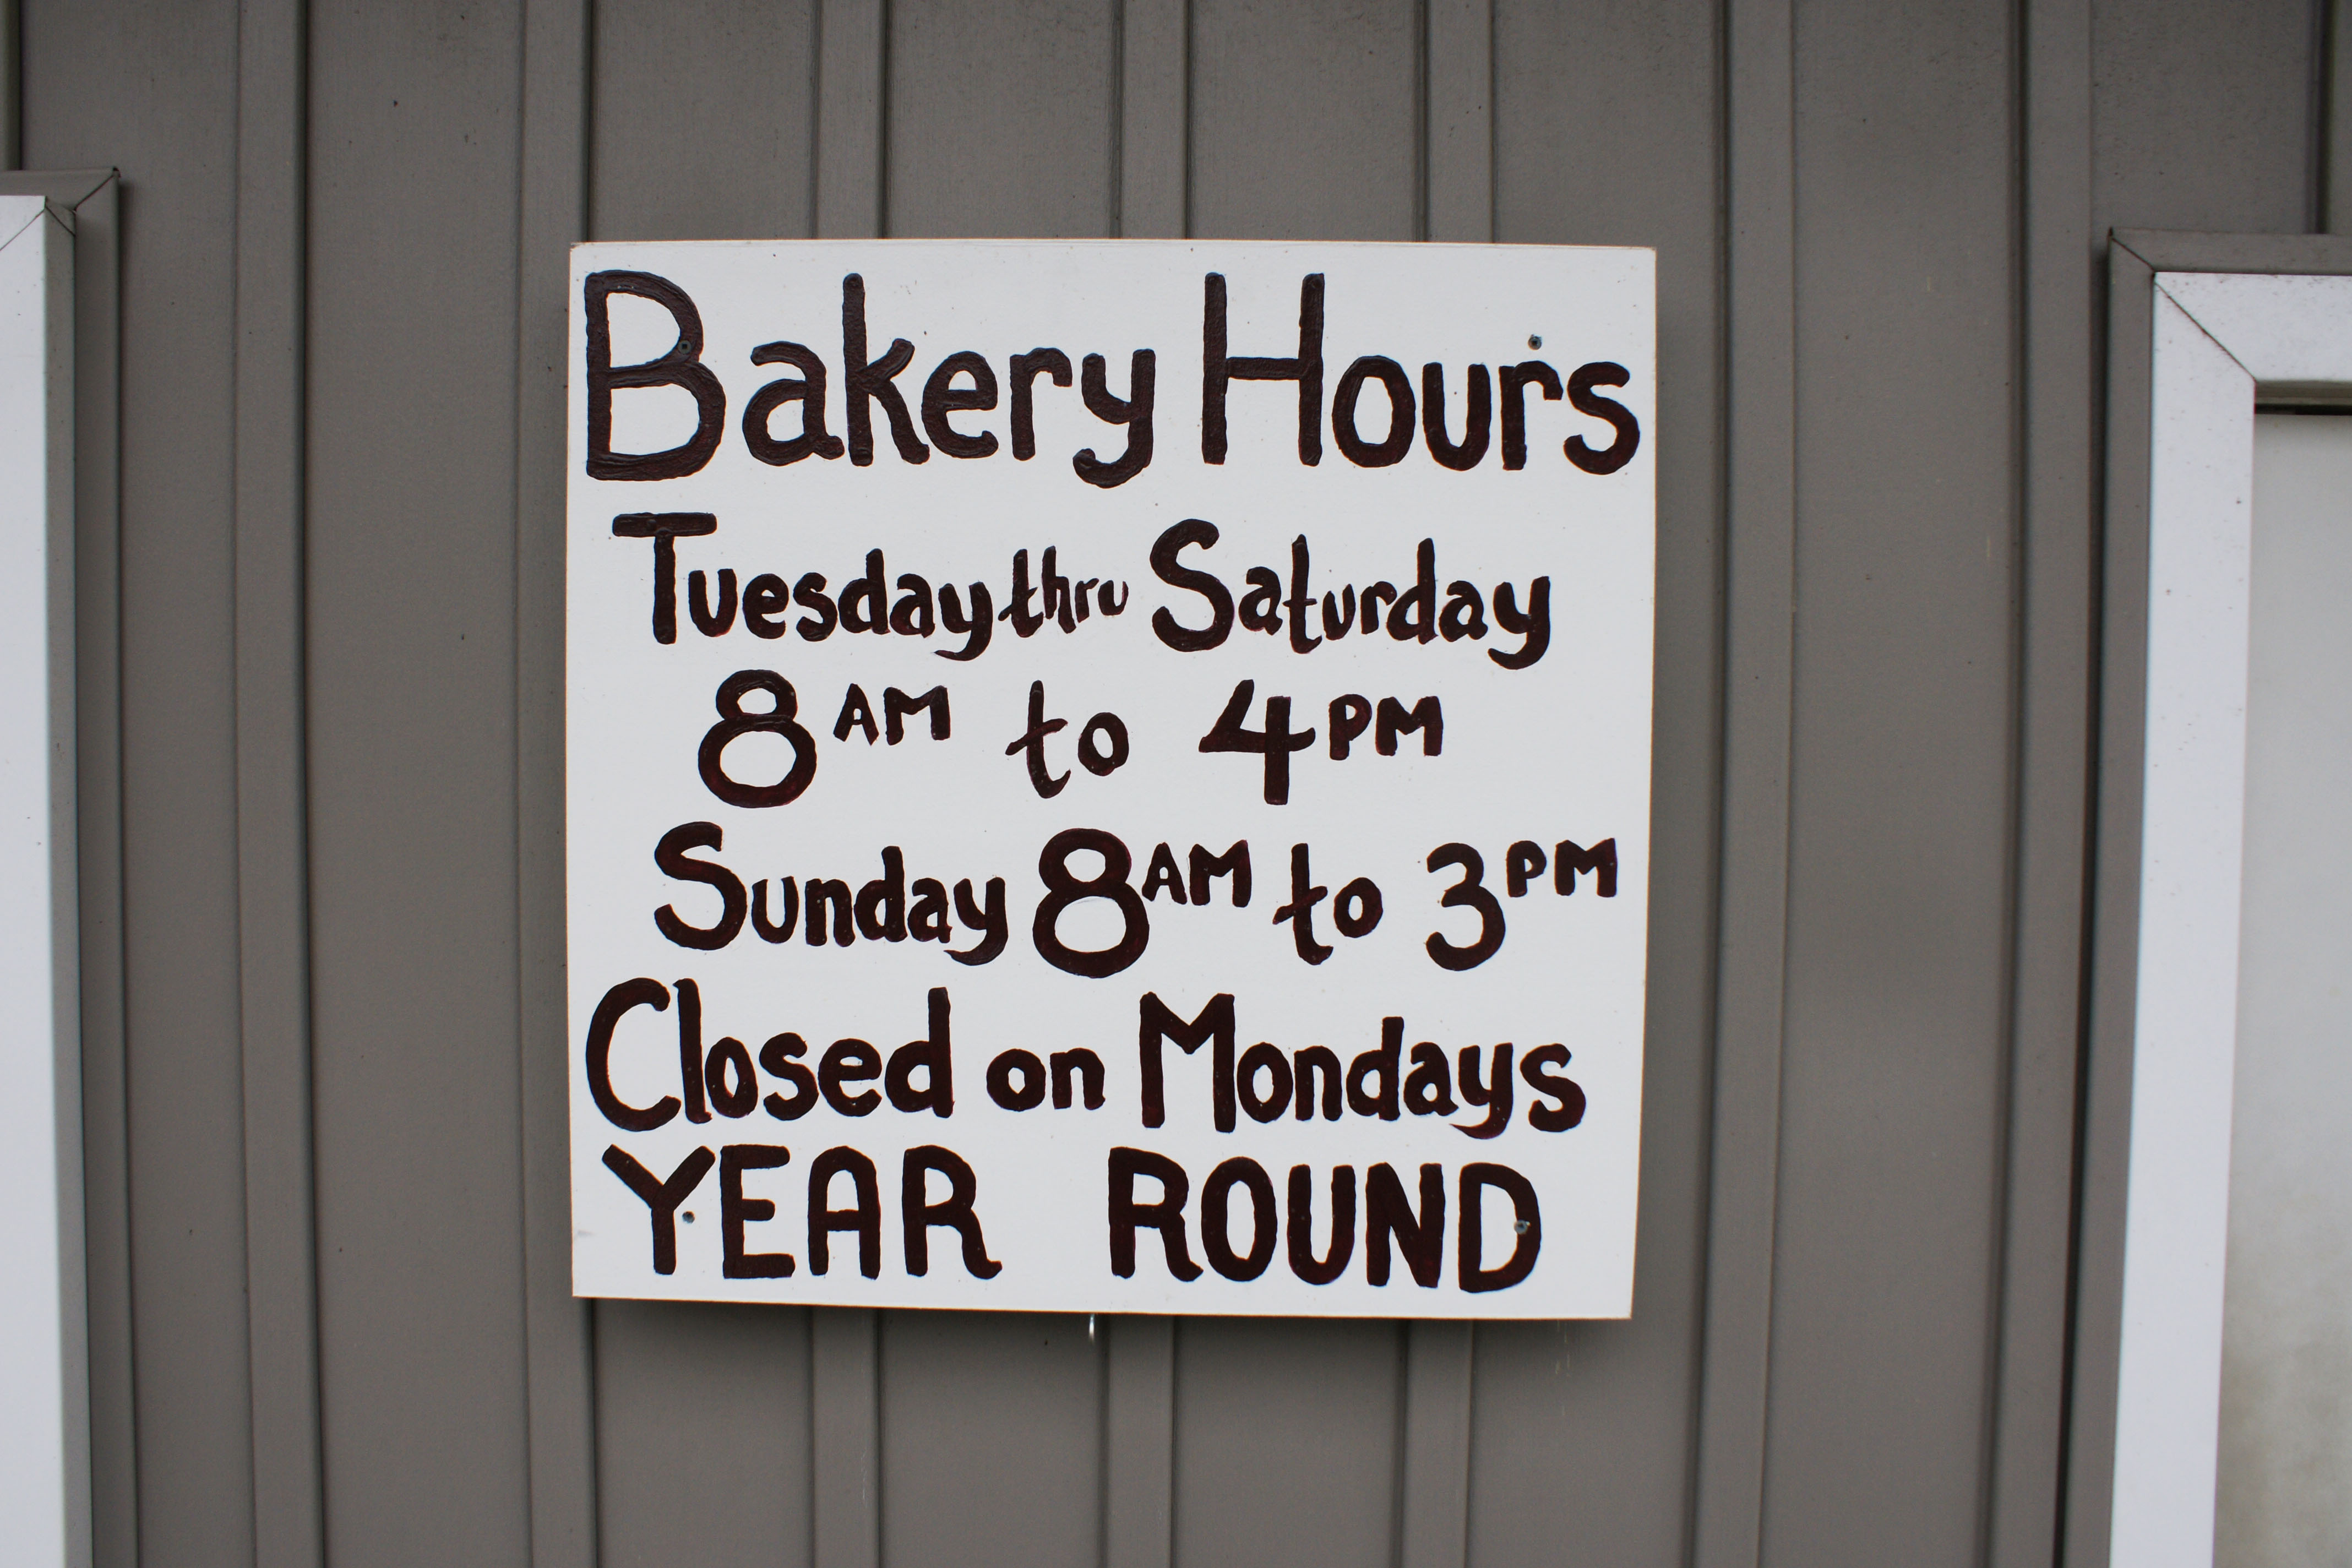 Bakery hours